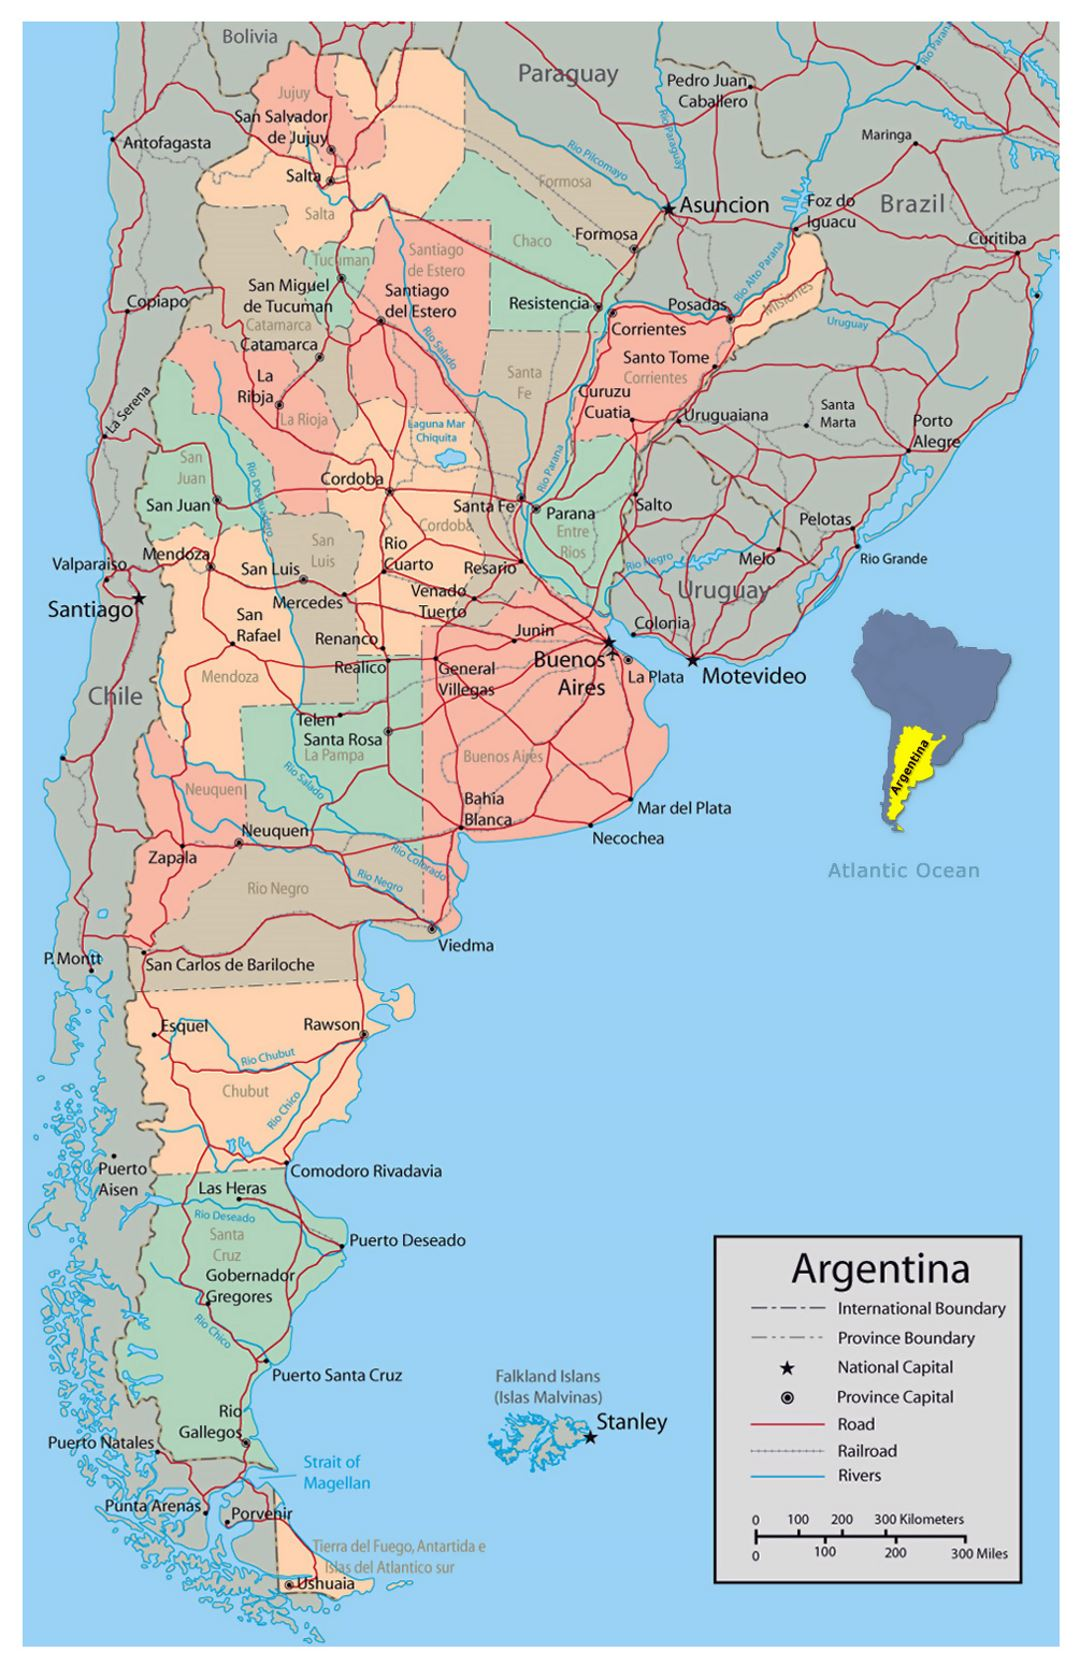 Detailed political and administrative map of Argentina with major